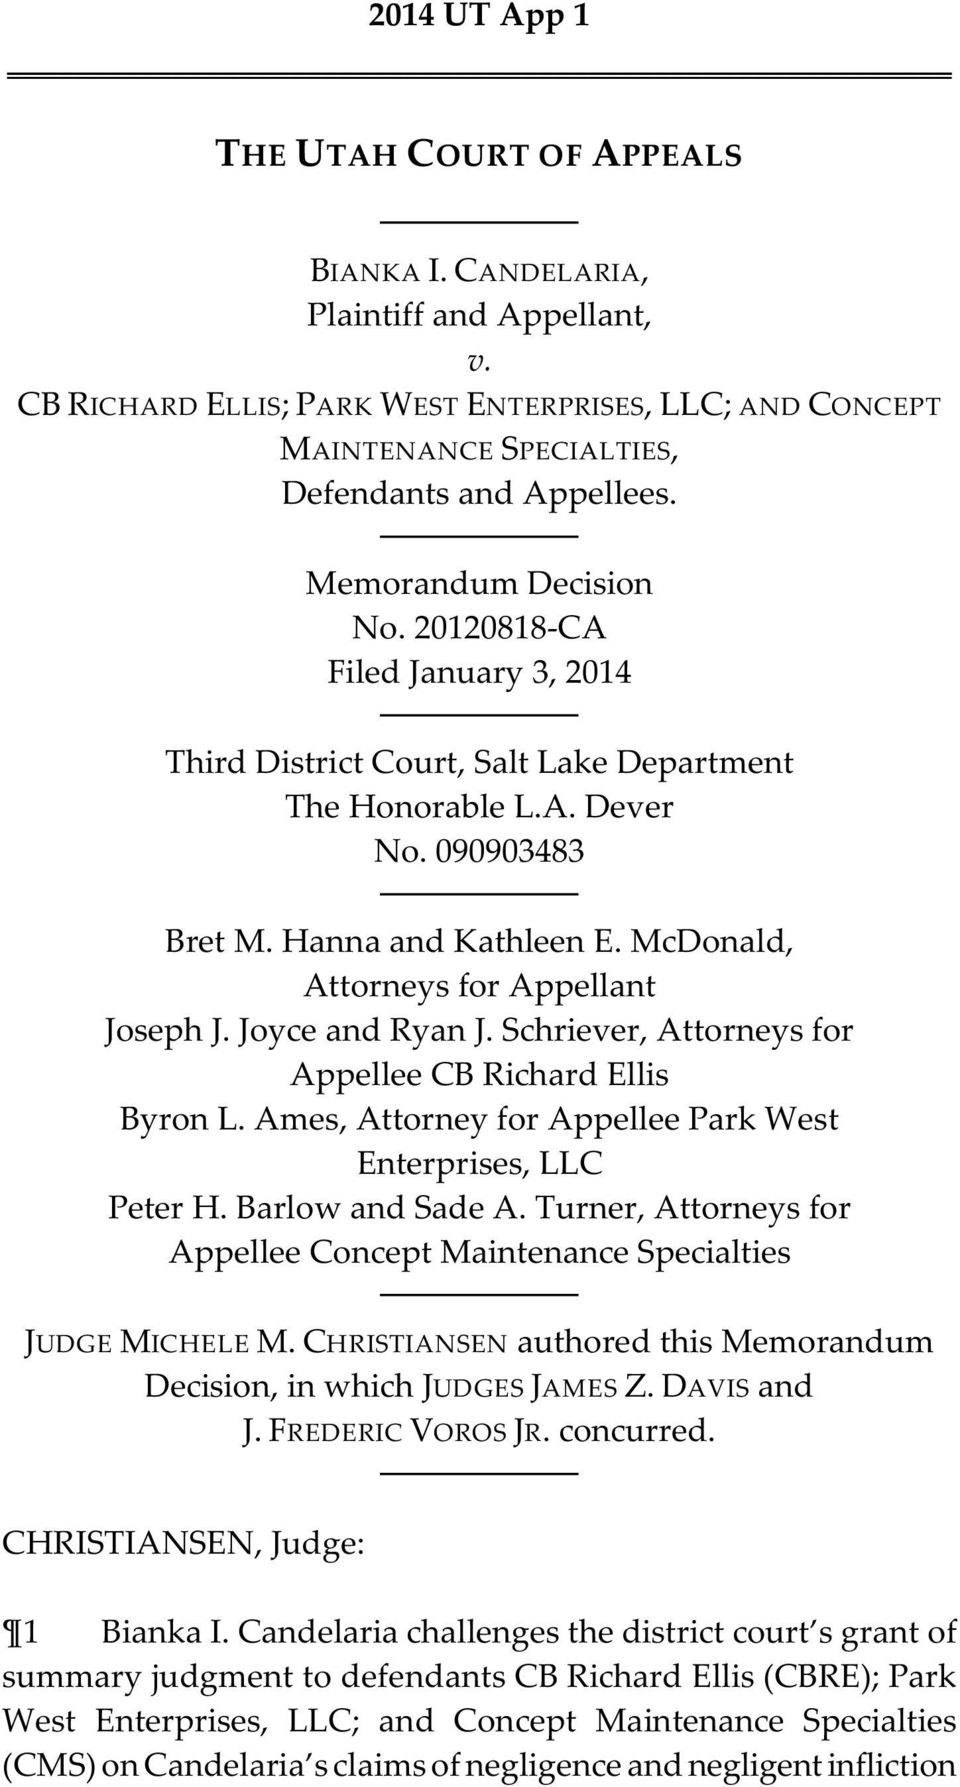 McDonald, Attorneys for Appellant Joseph J. Joyce and Ryan J. Schriever, Attorneys for Appellee CB Richard Ellis Byron L. Ames, Attorney for Appellee Park West Enterprises, LLC Peter H.